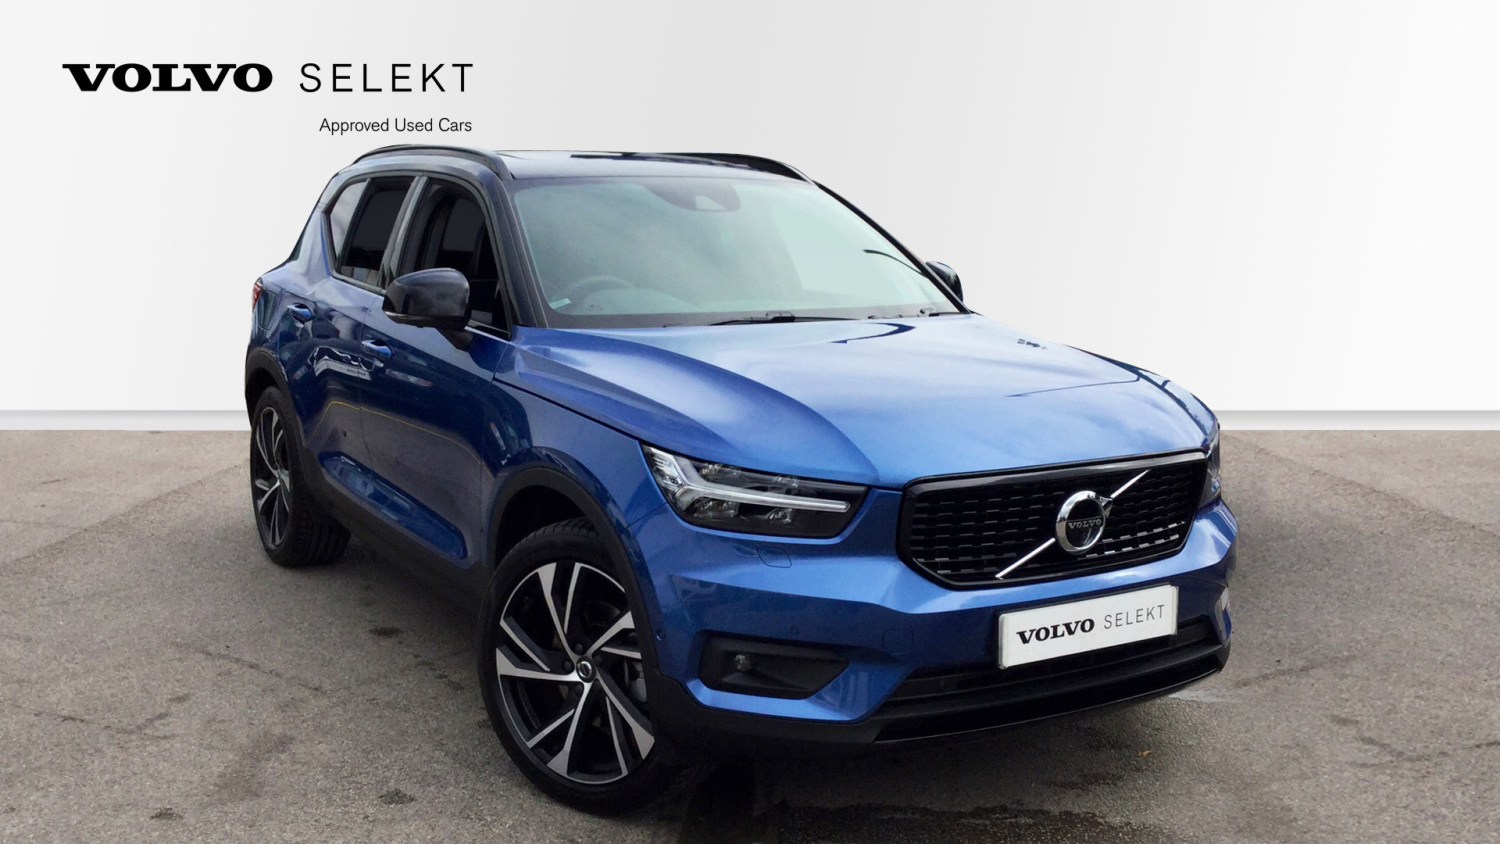 buy online volvo xc40 2 0 t5 first edition 5dr awd geartronic petrol estate for sale bristol. Black Bedroom Furniture Sets. Home Design Ideas